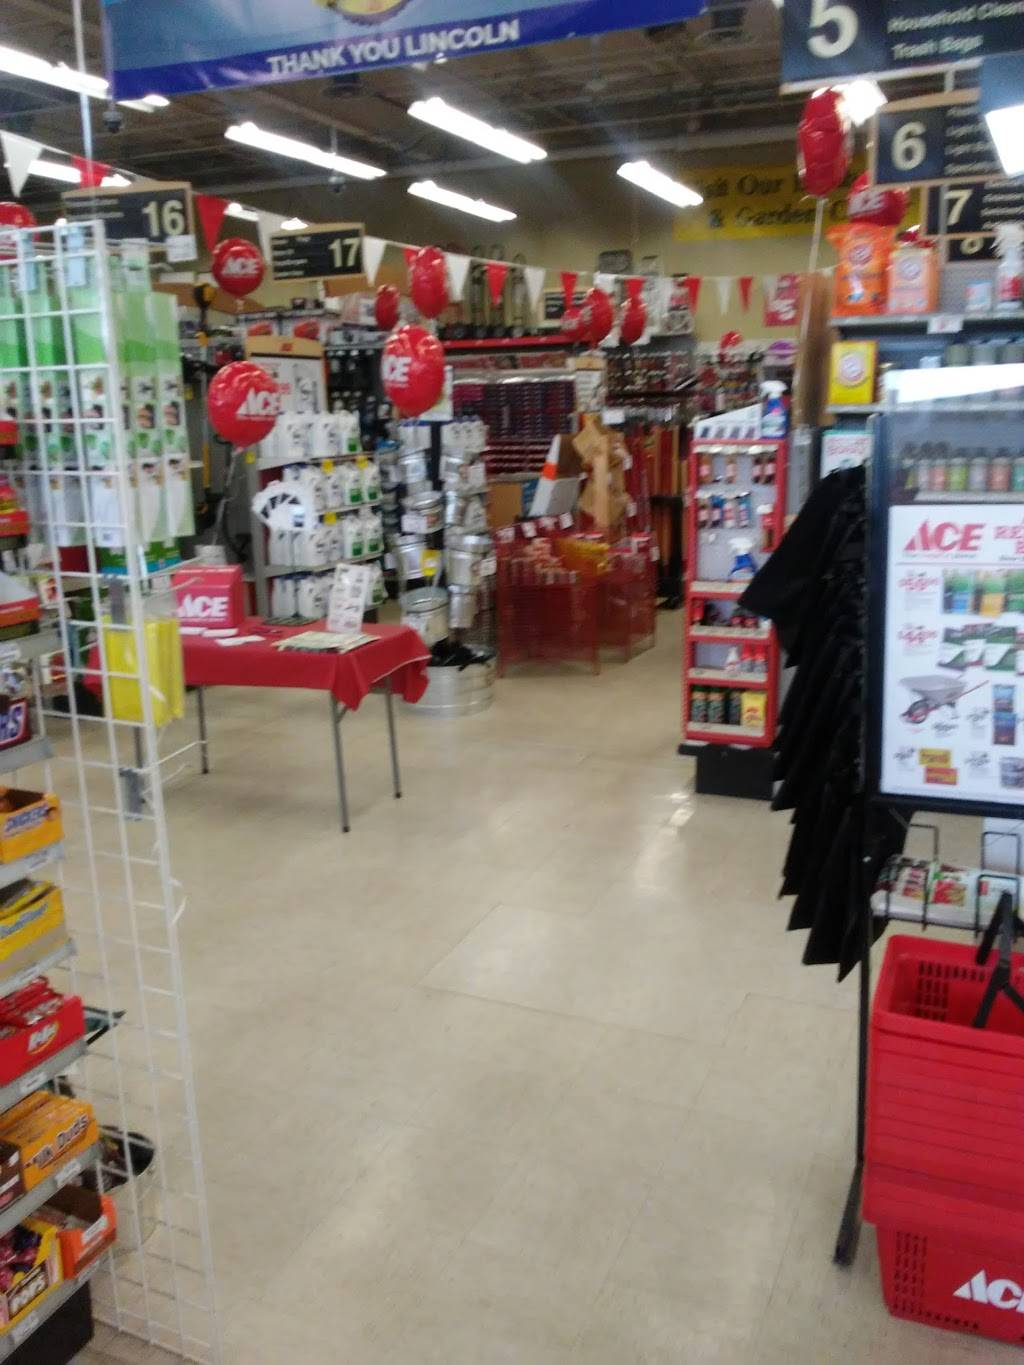 QP Ace Hardware - hardware store  | Photo 9 of 10 | Address: 901 S 27th St, Lincoln, NE 68510, USA | Phone: (402) 438-5517